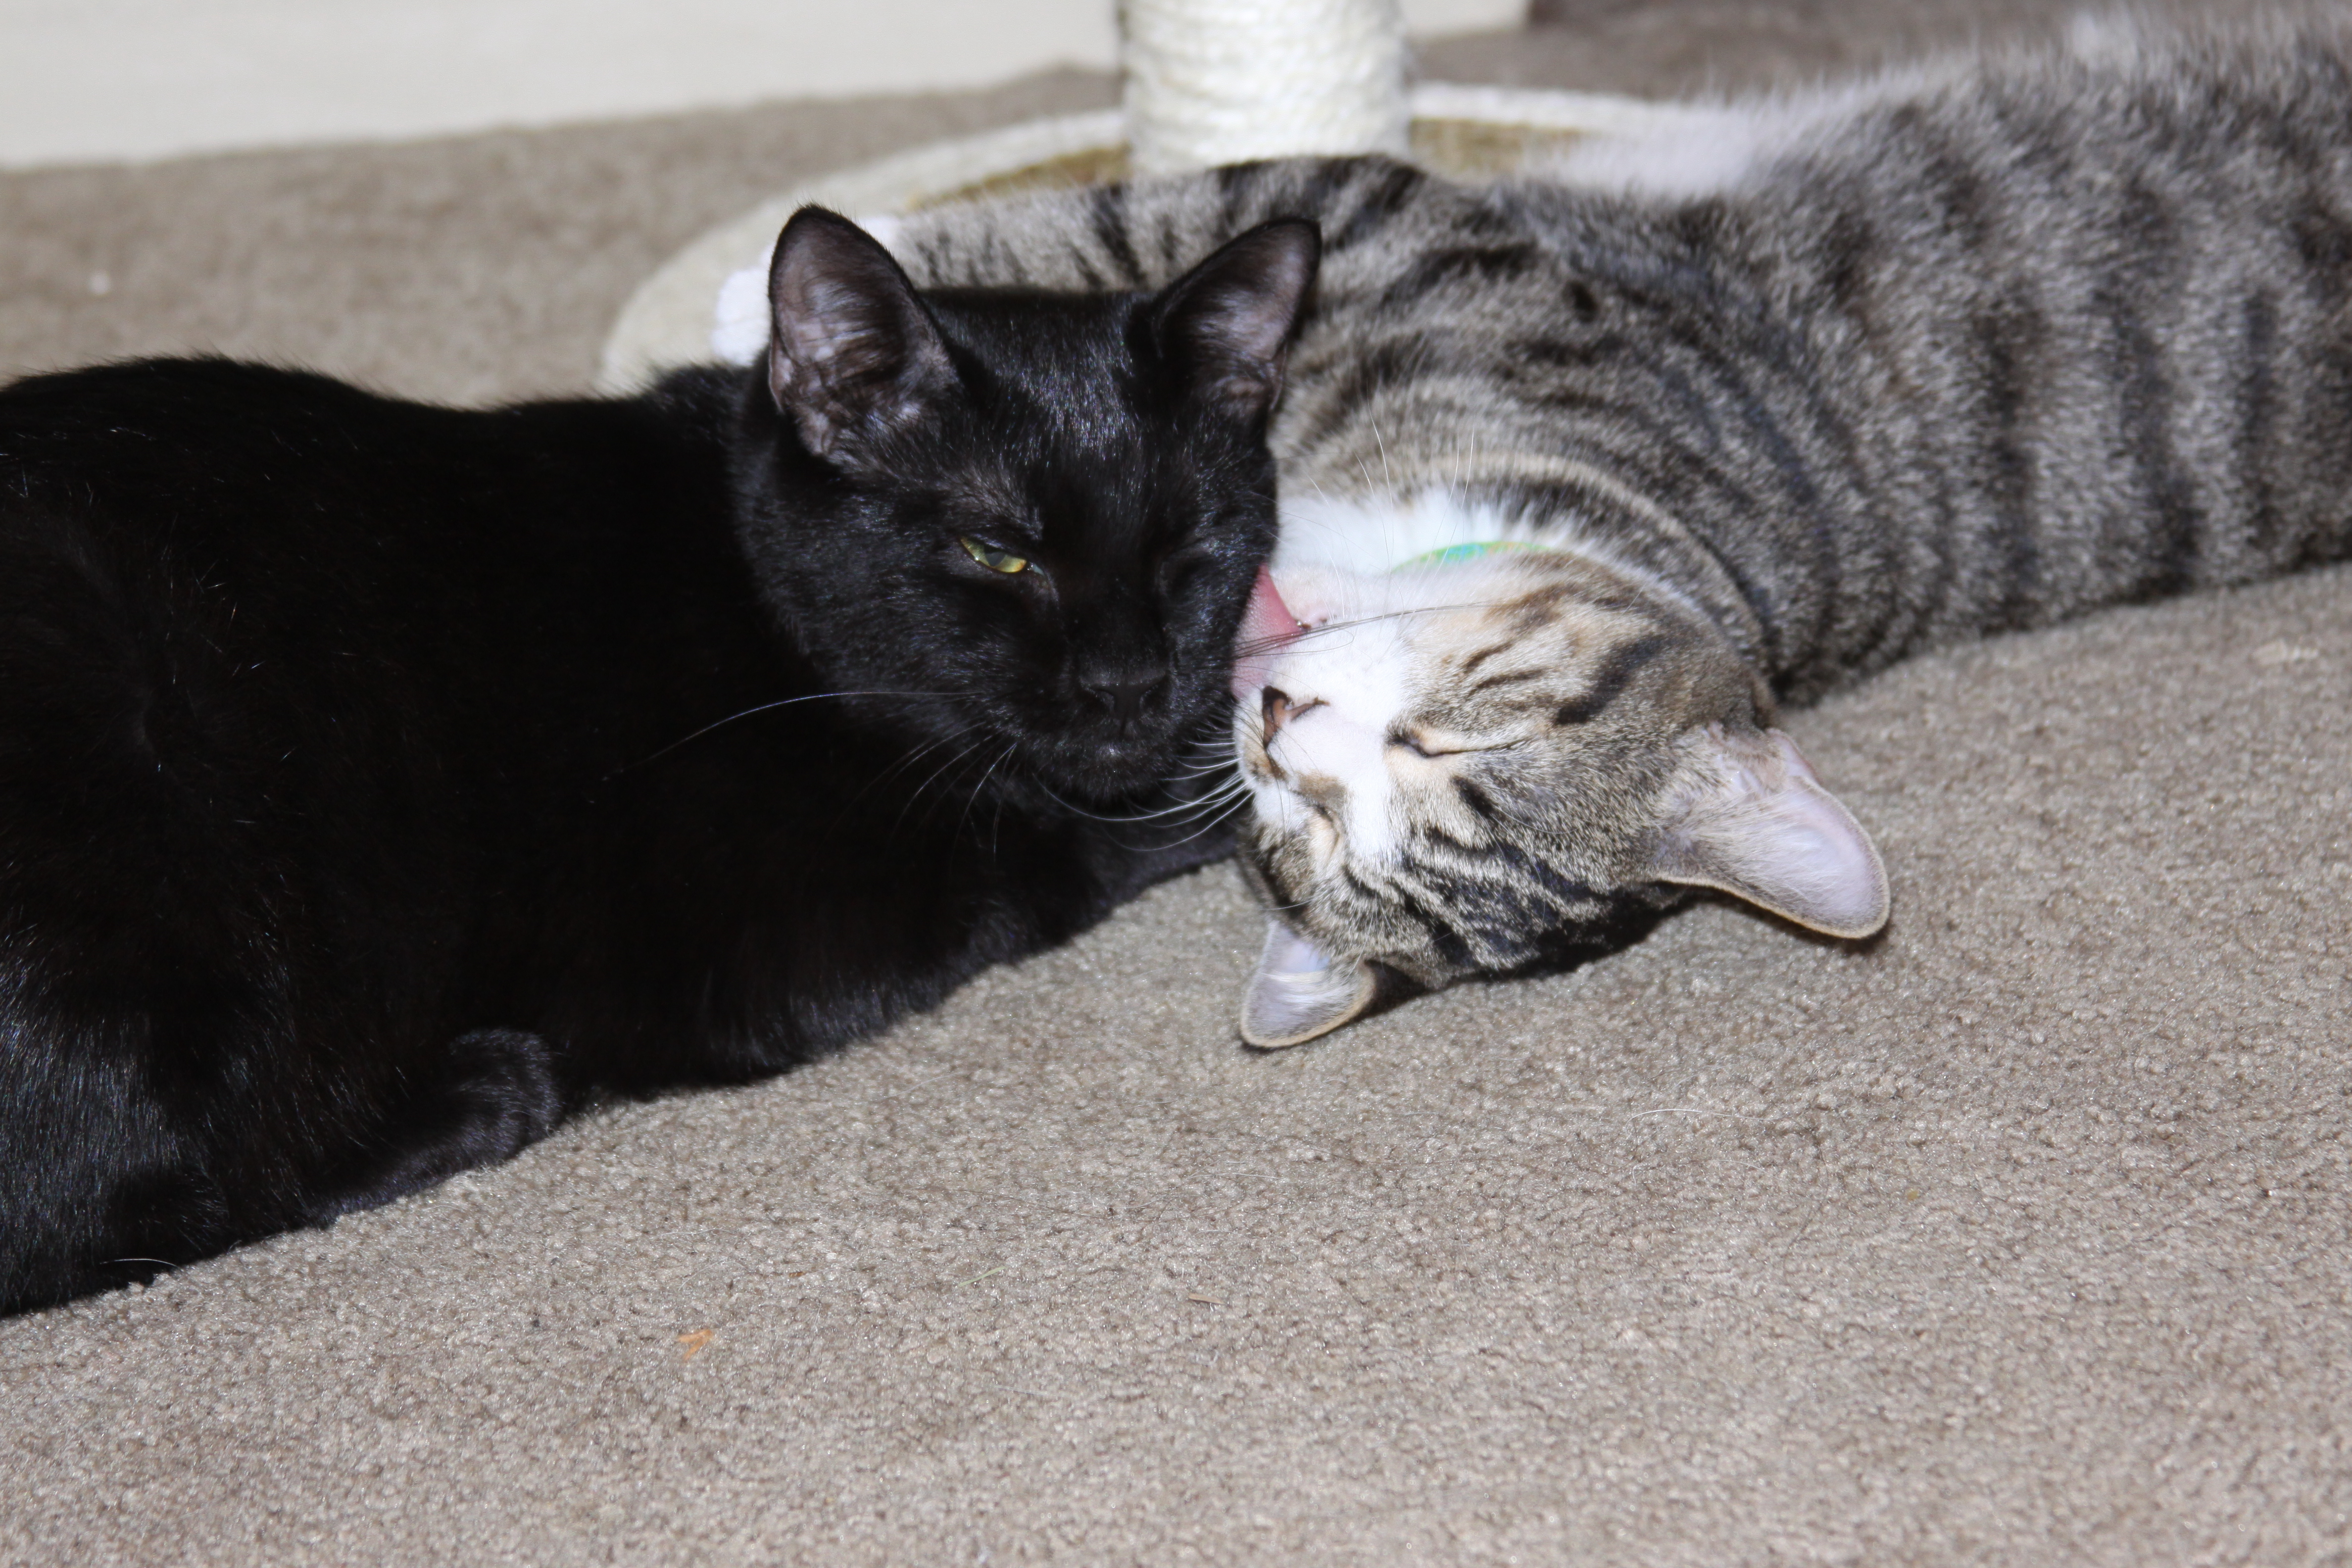 Two cats snuggling together